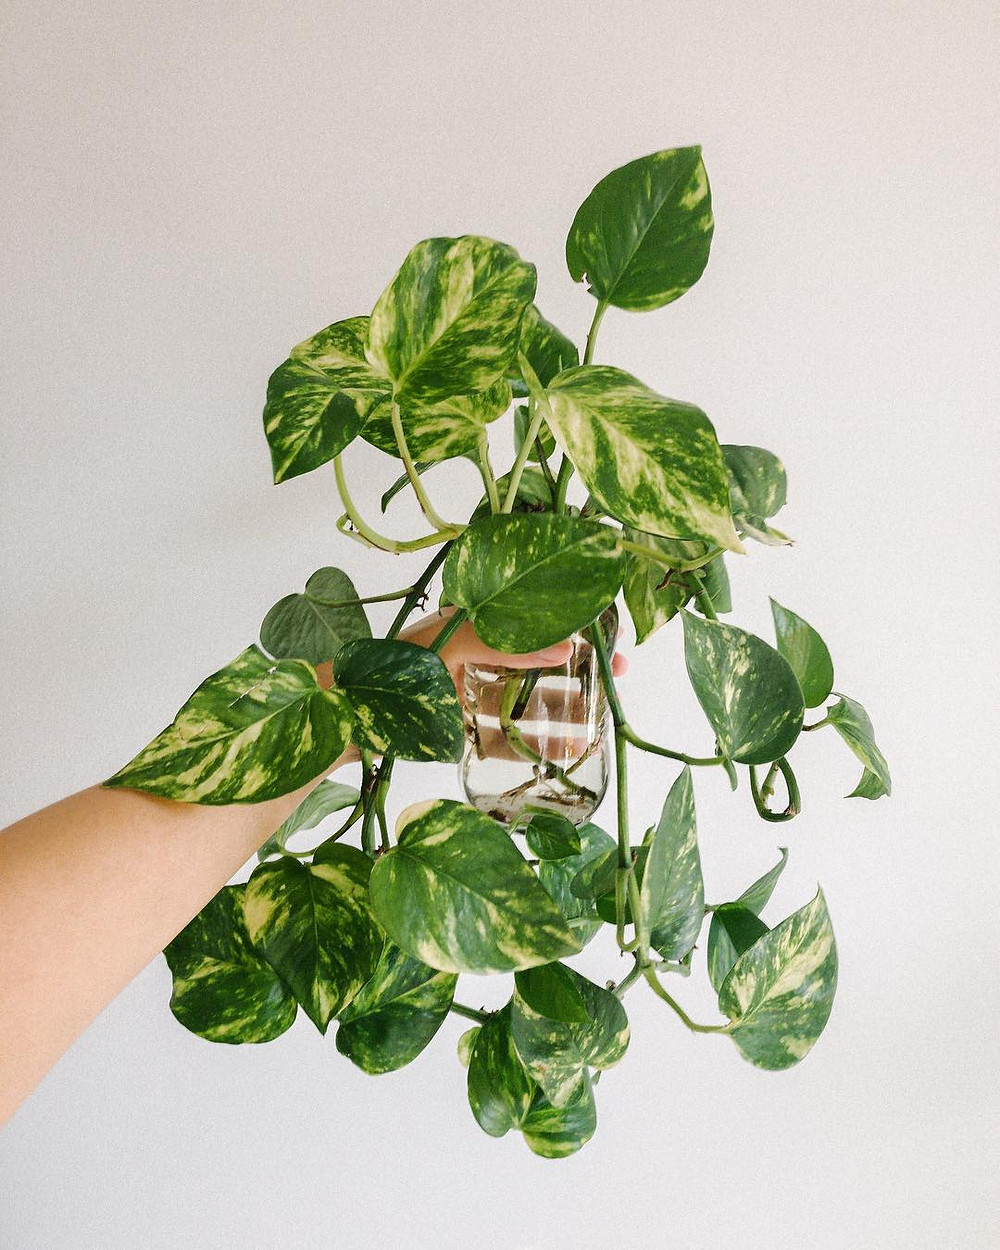 Golden Pothos Healthy Home Air Purifying Houseplants